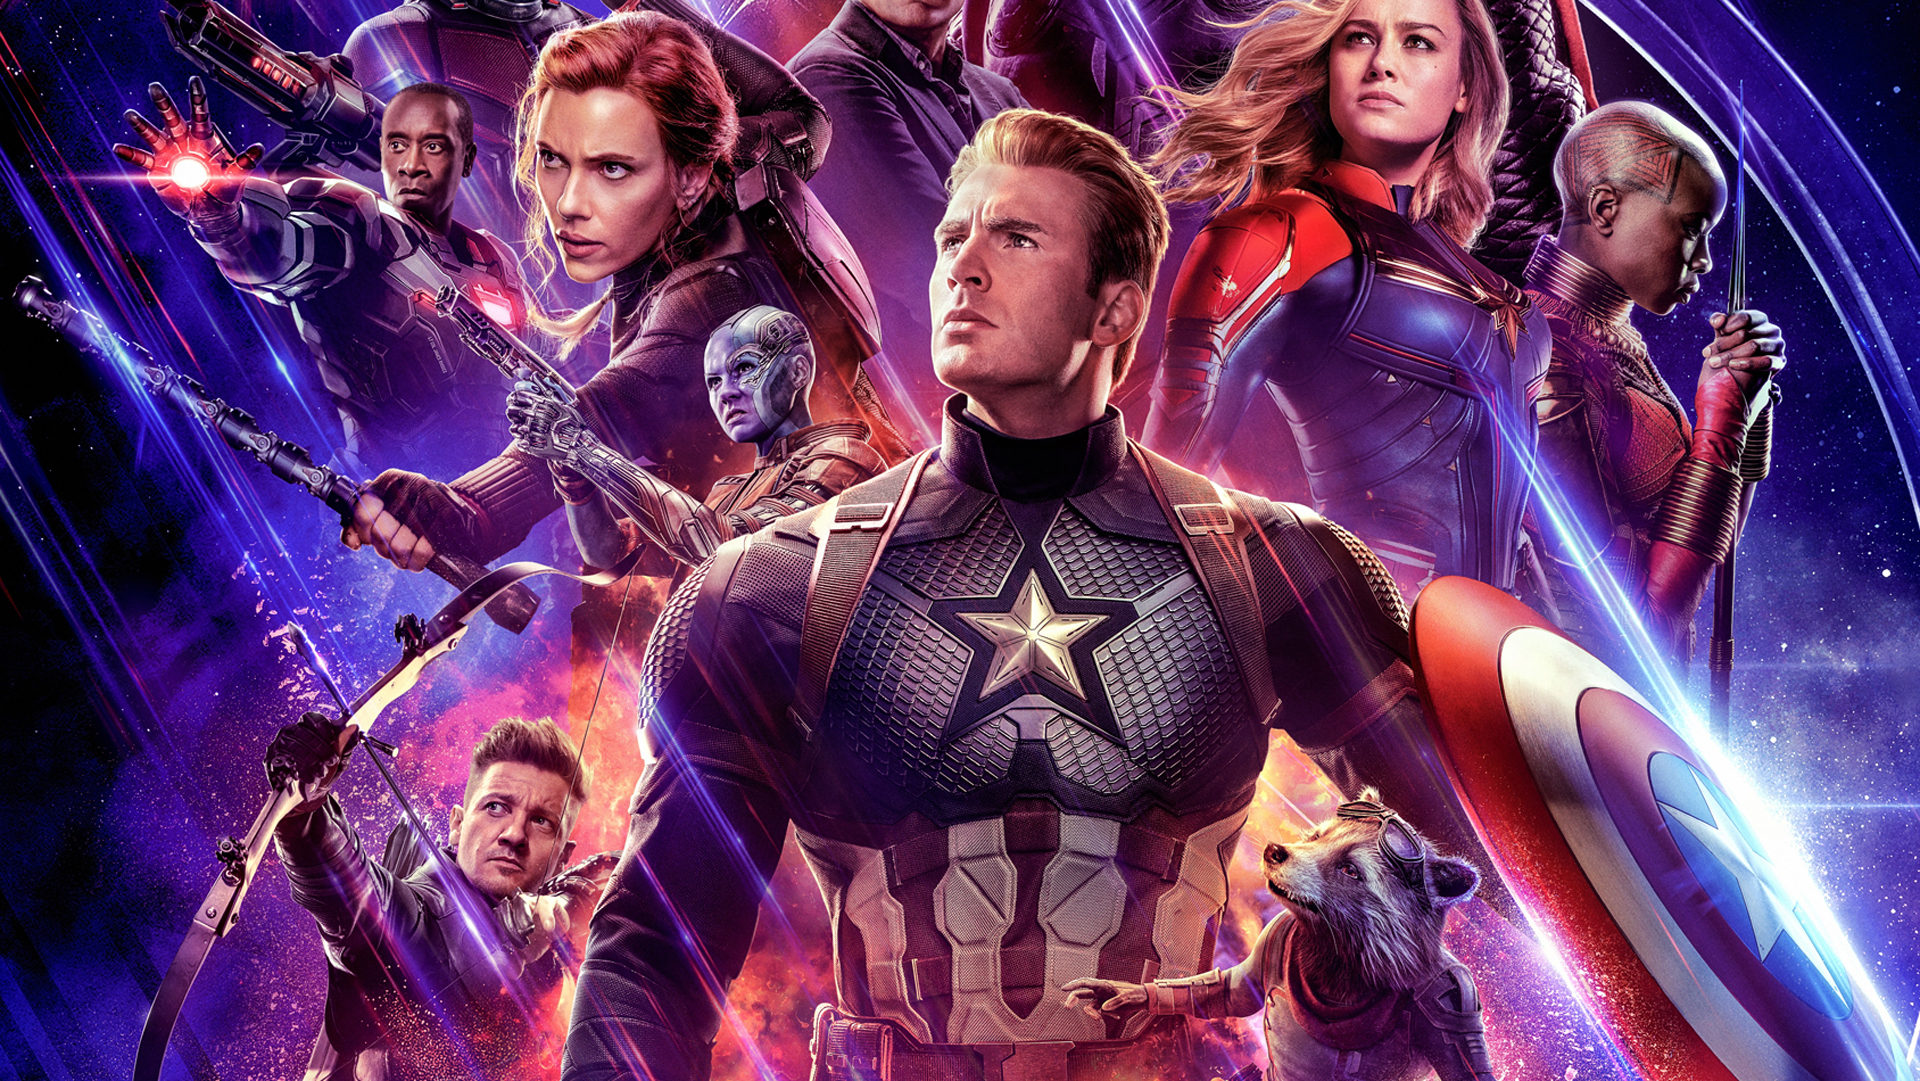 Movie Poster 2019: 2932x2932 Avengers Endgame 2019 Official New Poster Ipad